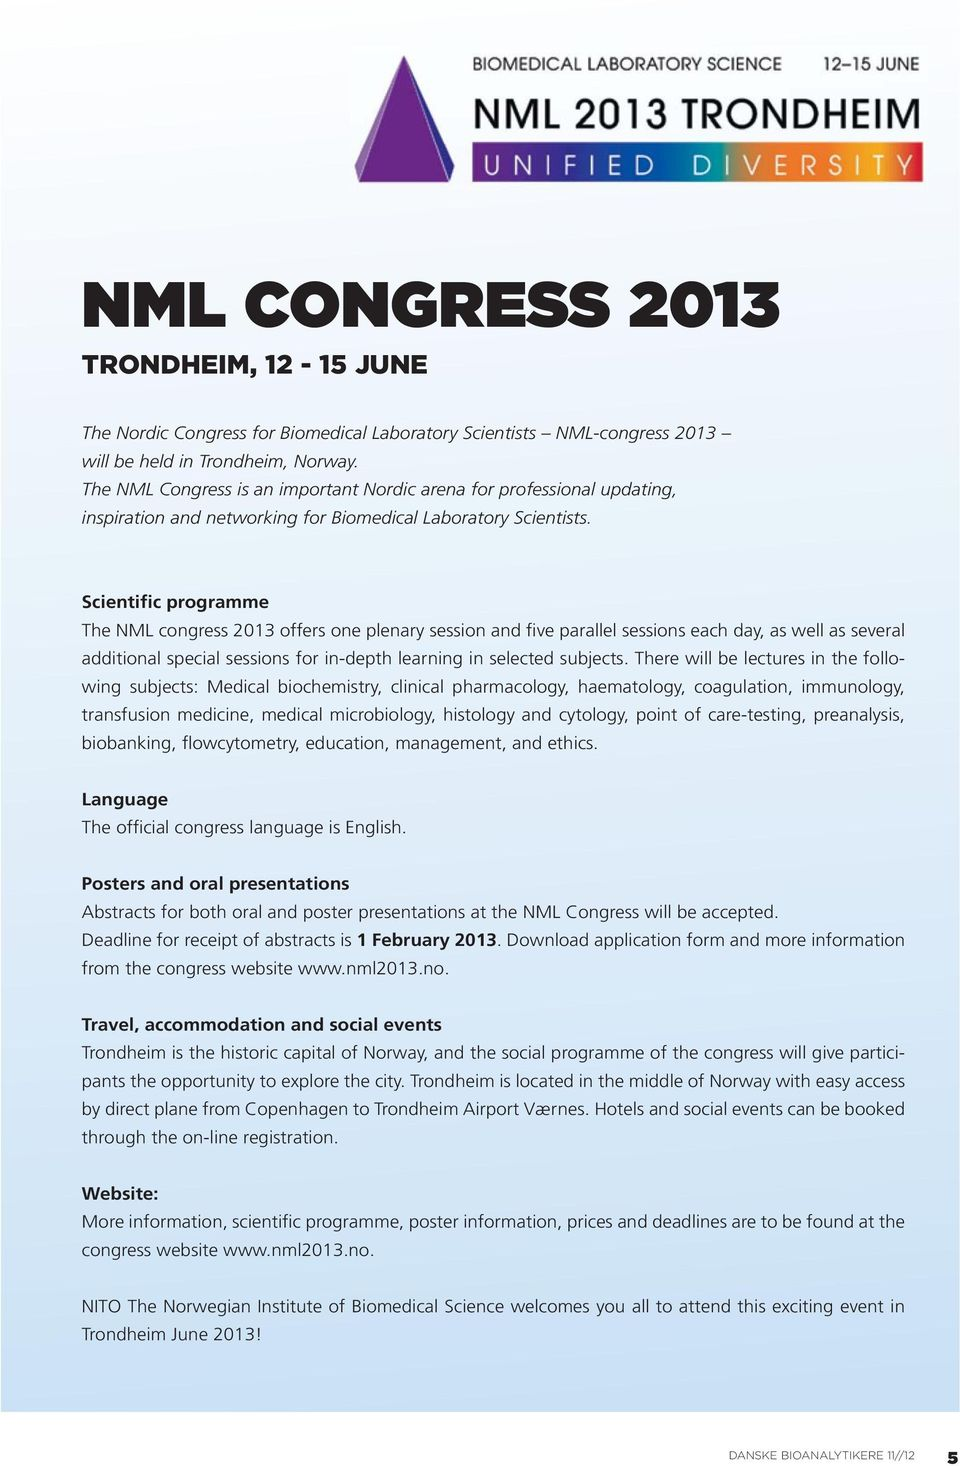 Scientific programme The NML congress 2013 offers one plenary session and five parallel sessions each day, as well as several additional special sessions for in-depth learning in selected subjects.